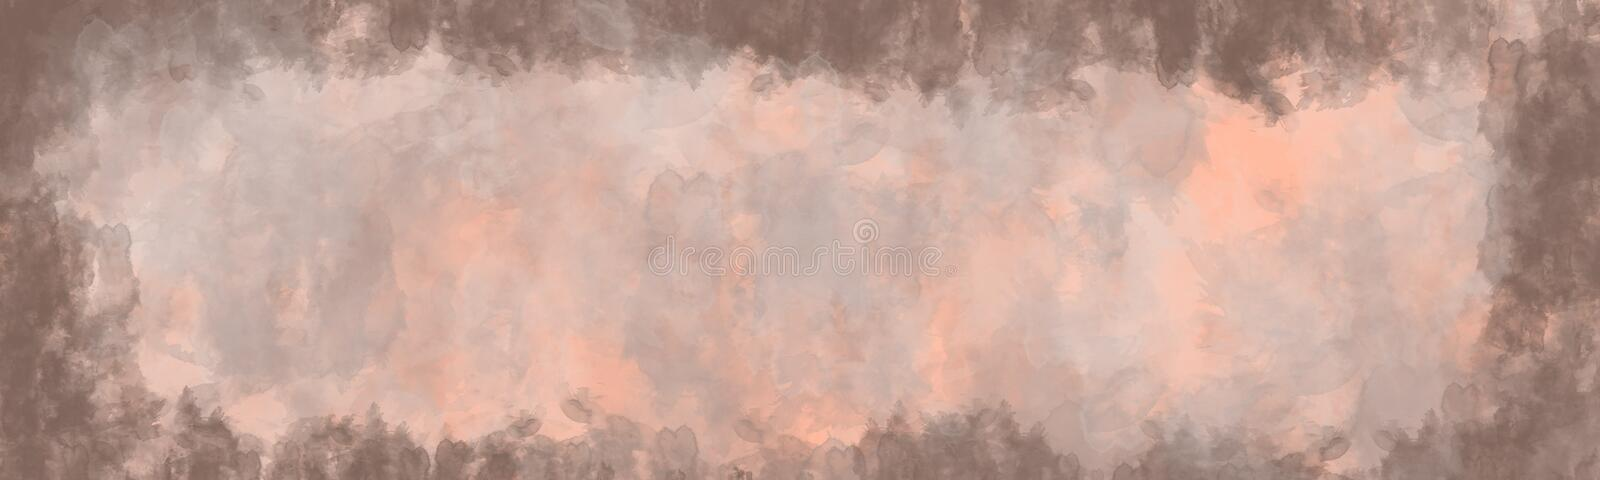 Abstract background, vintage texture with border stock illustration